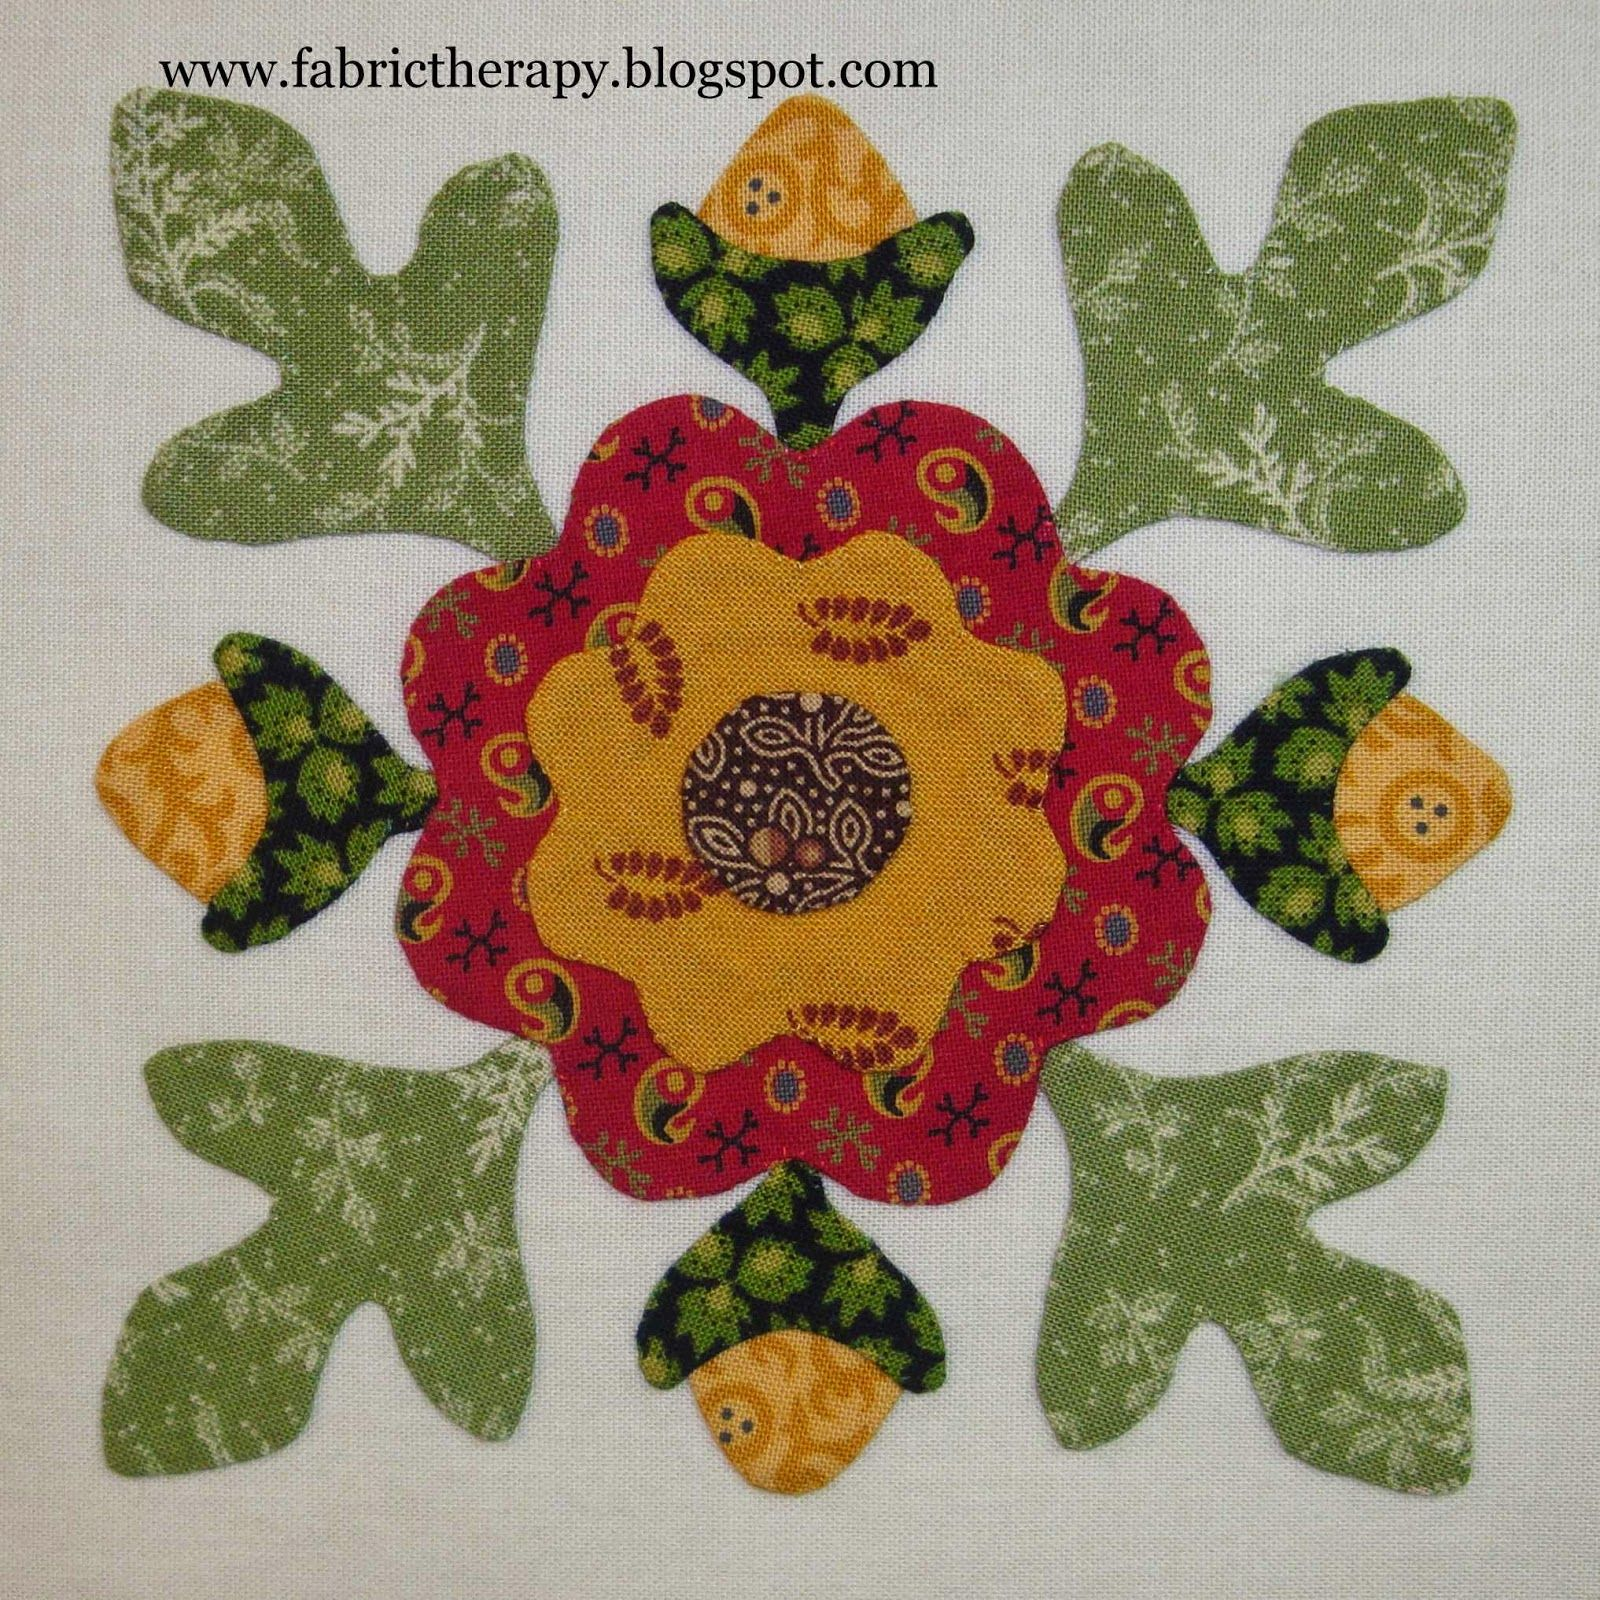 I have managed to finish 8 more little hand applique blocks from ...